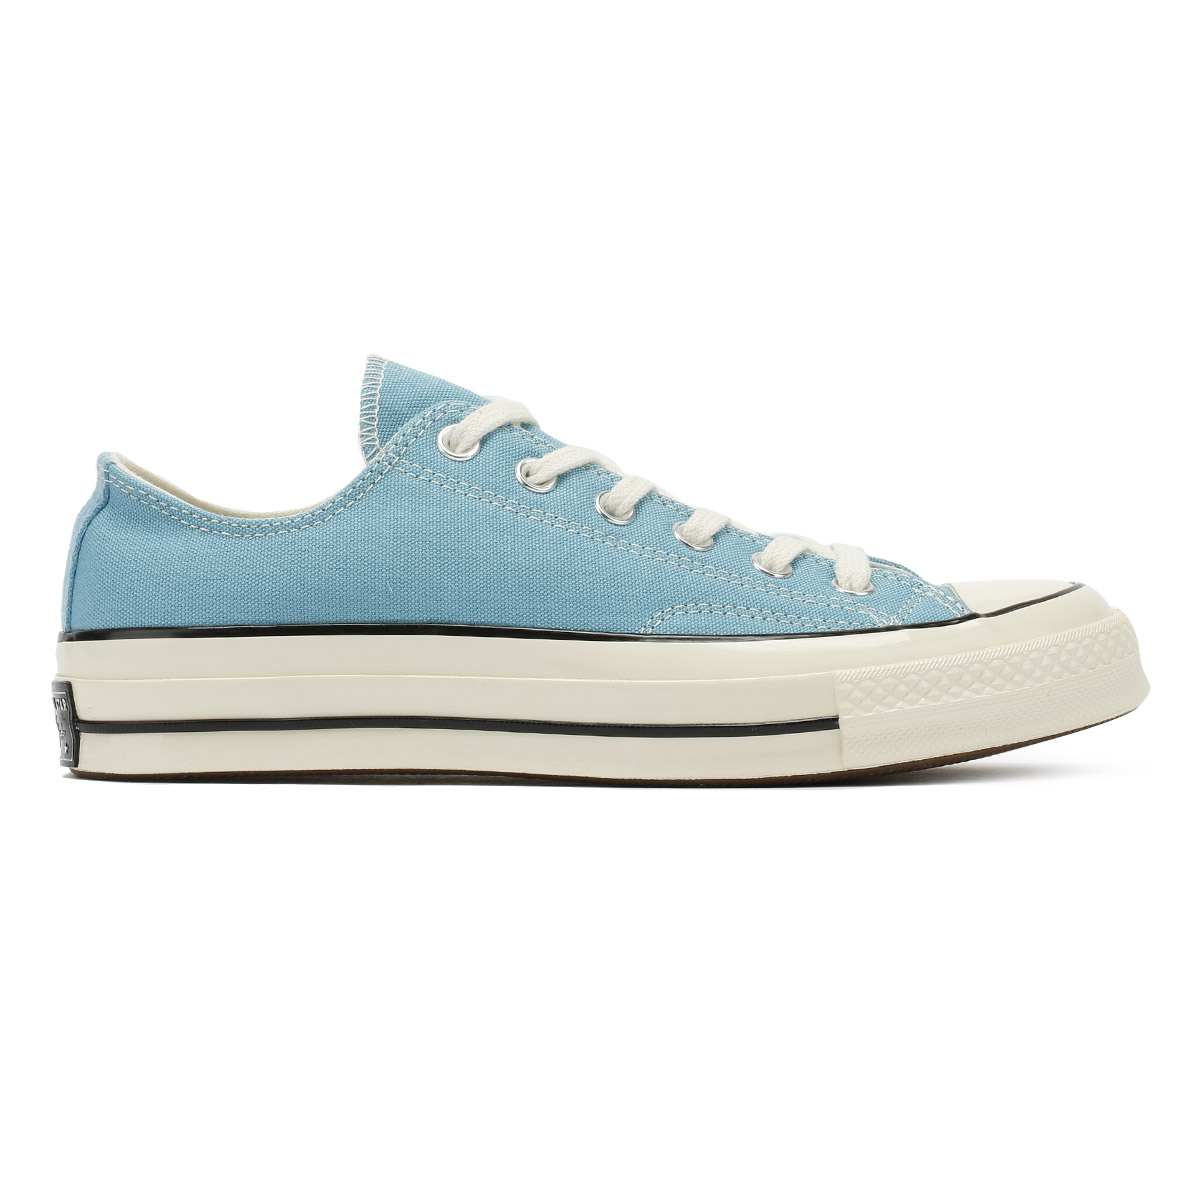 Converse Chuck Ox Taylor All Star Unisex Ox Chuck Trainers Shoreline Blau Casual Schuhes a560a5